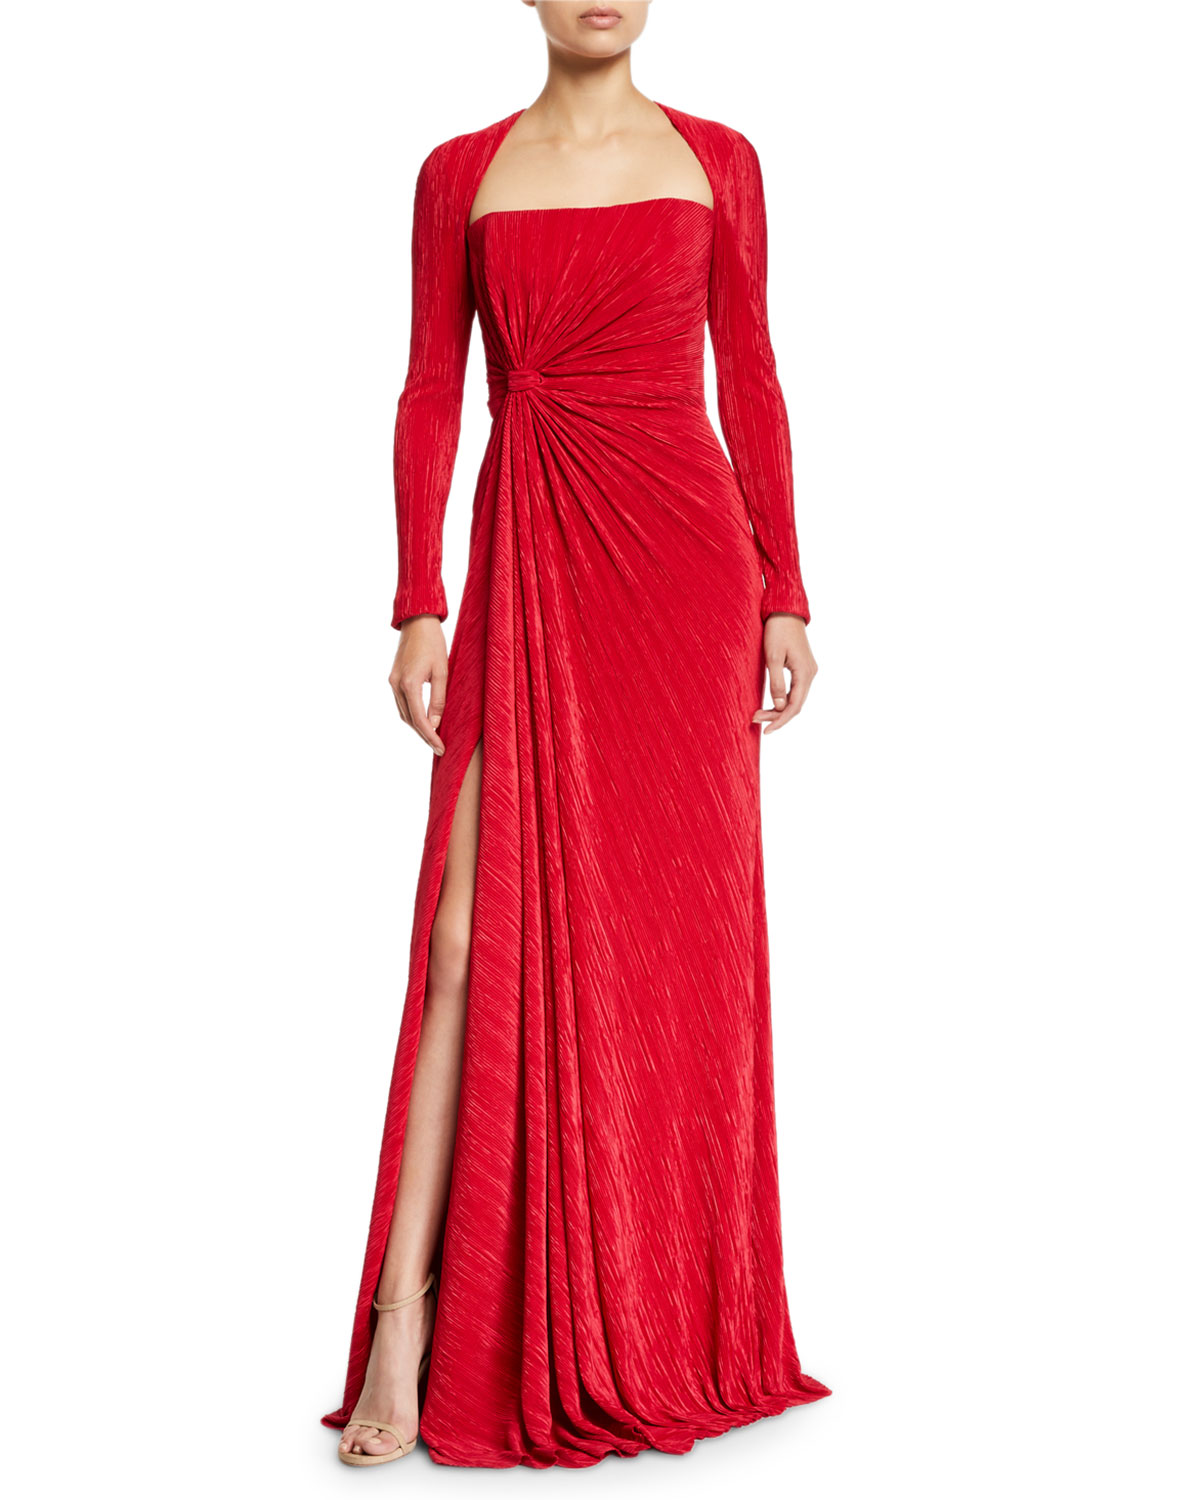 Badgley Mischka Collection Fortuni Knotted Long-Sleeve Drape Dress